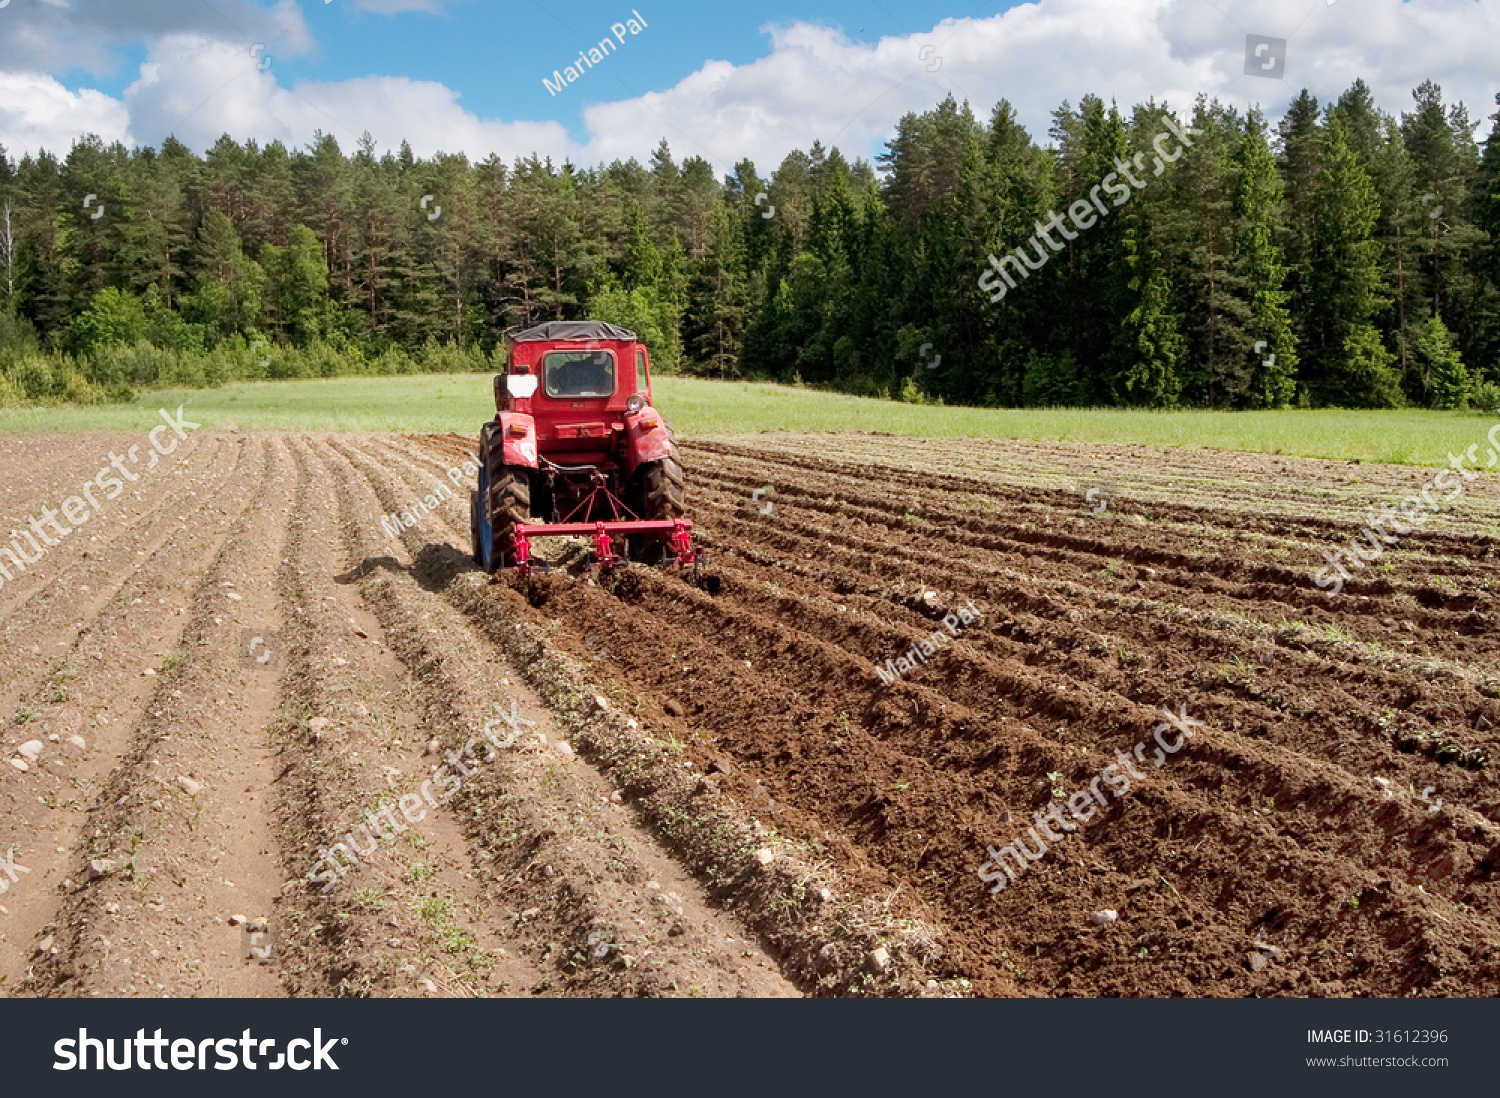 Tractor In Field Planting : Tractor on field preparing soil planting stock photo